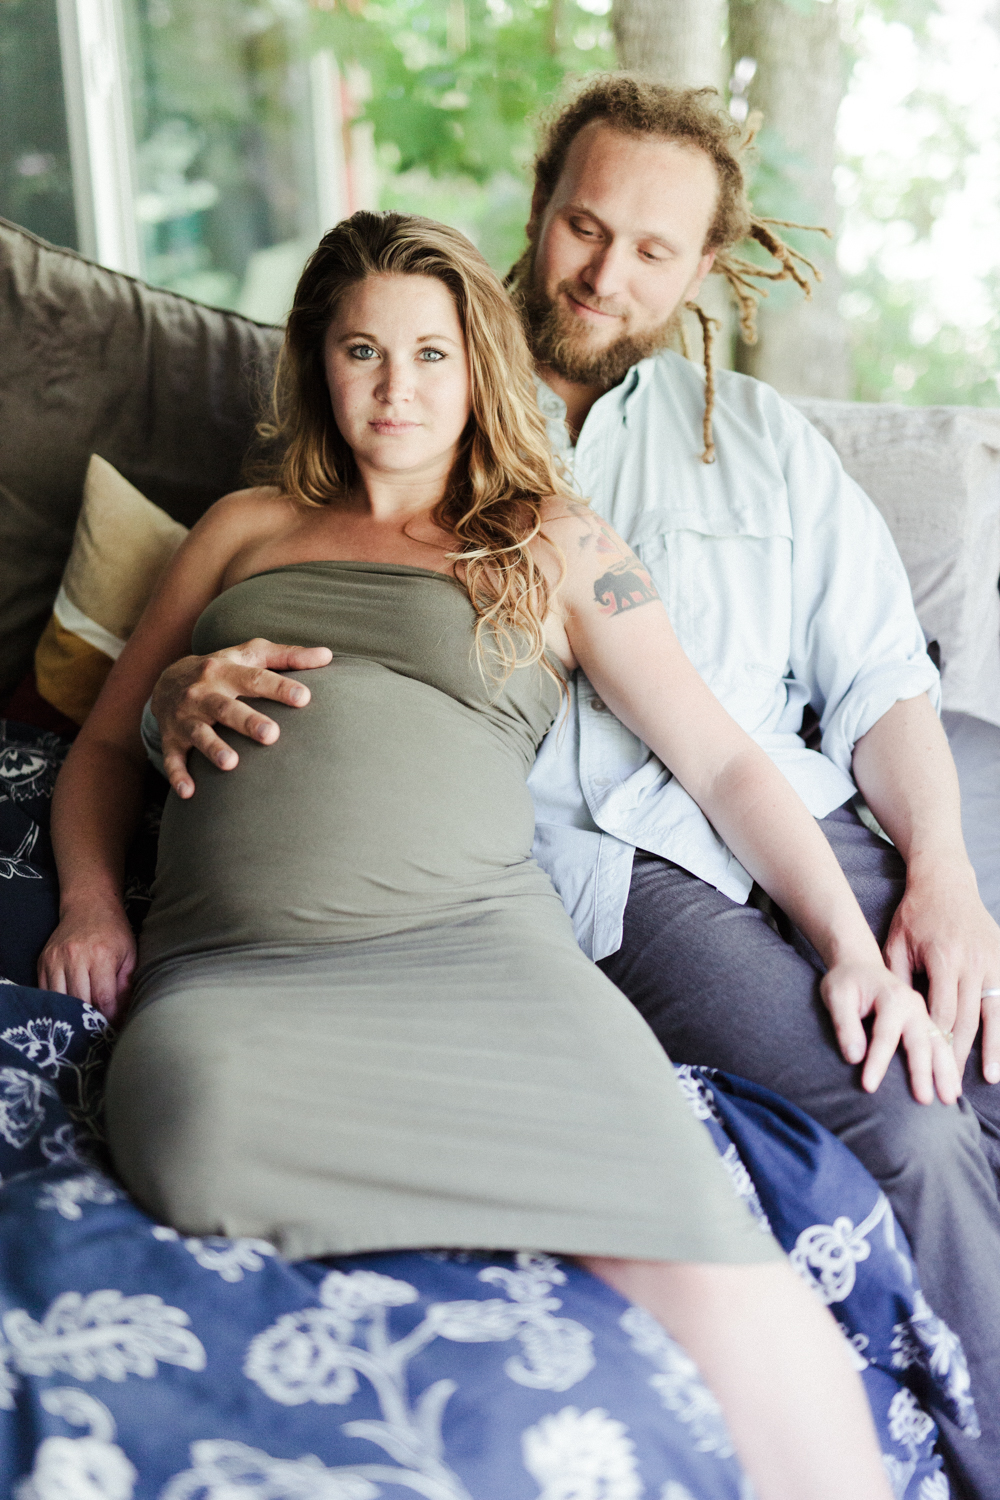 OGDEN RELAXED MATERNITY PHOTOGRAPHY